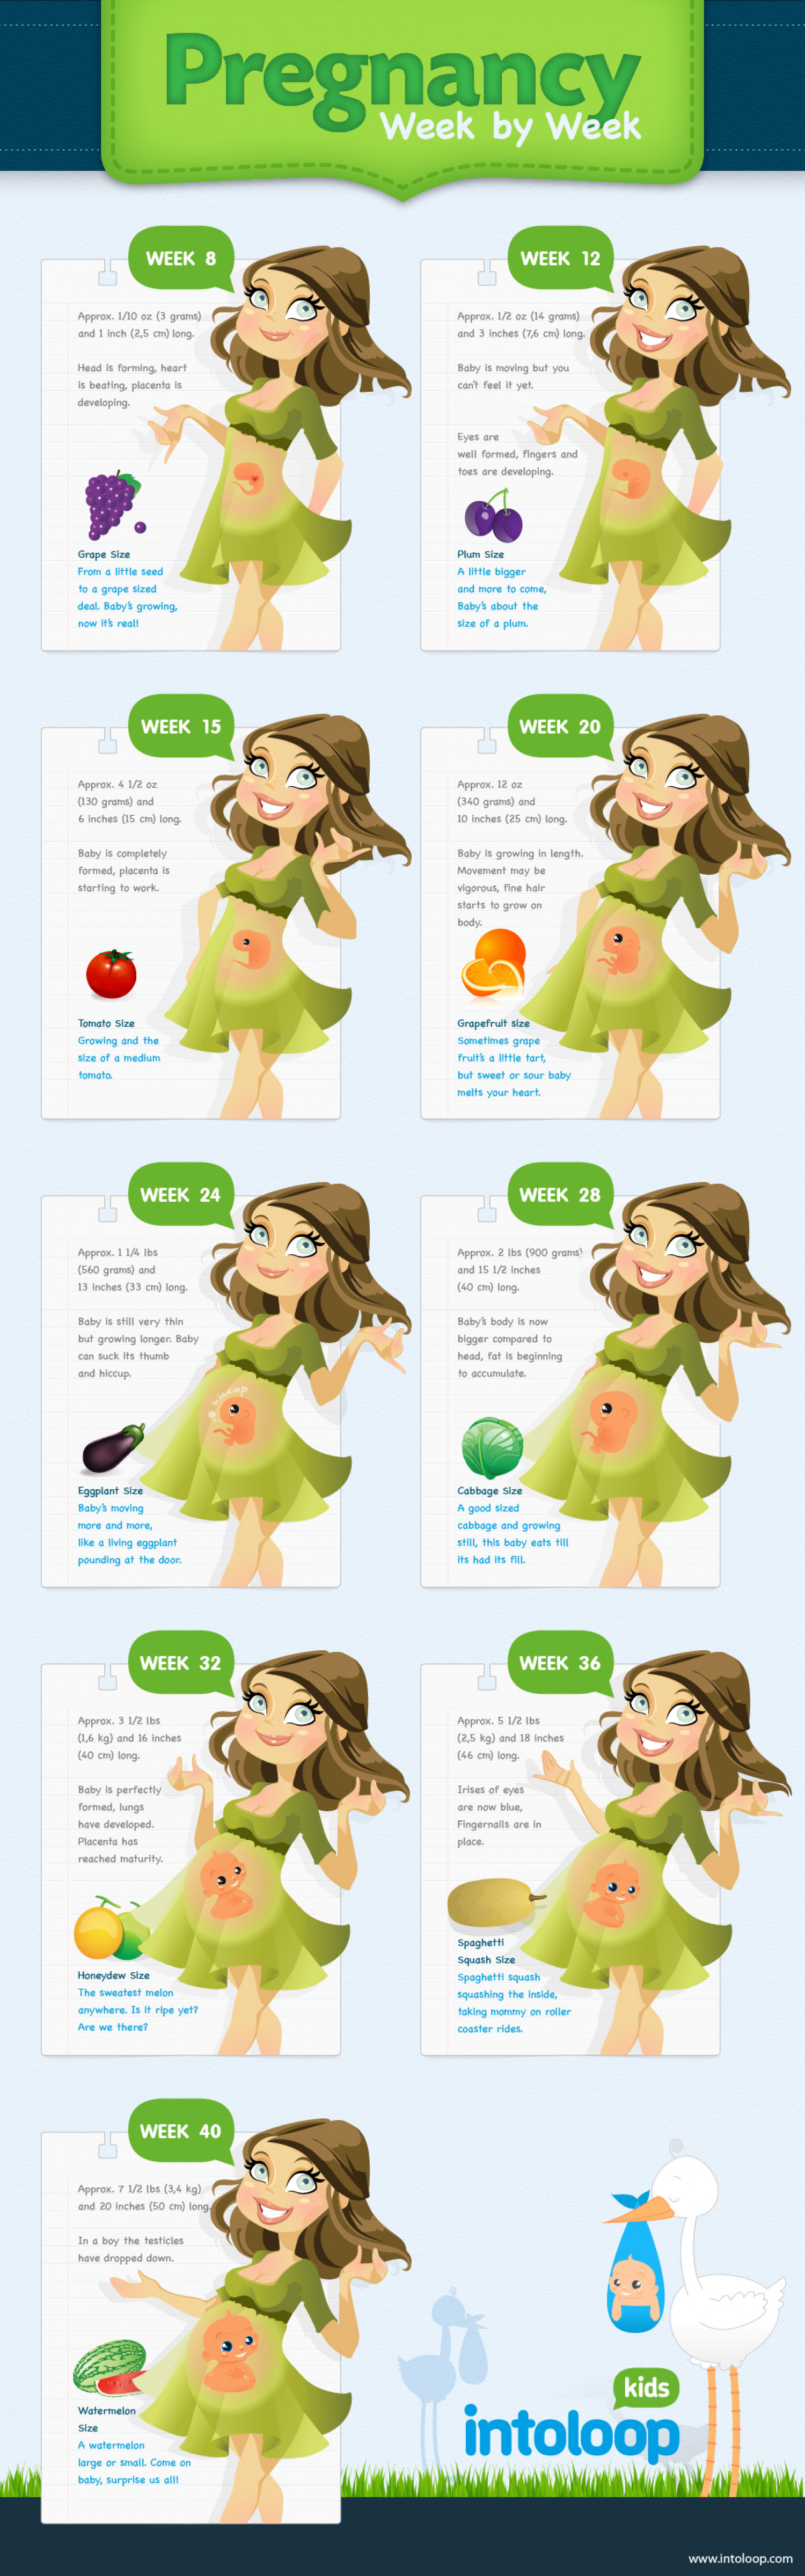 Pregnancy Week by Week Infographic